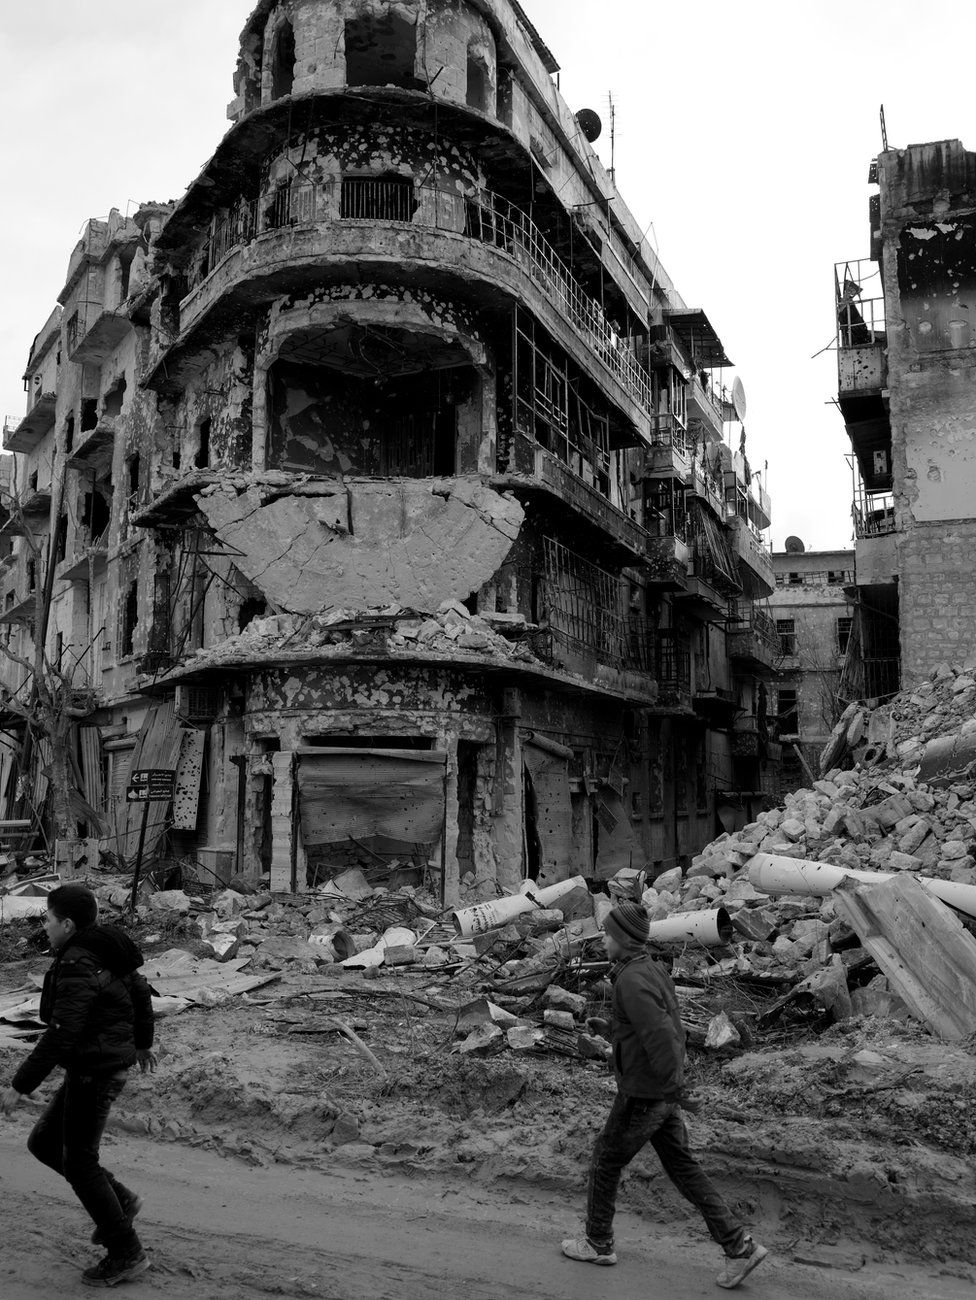 Children walk past war-damaged buildings in Aleppo